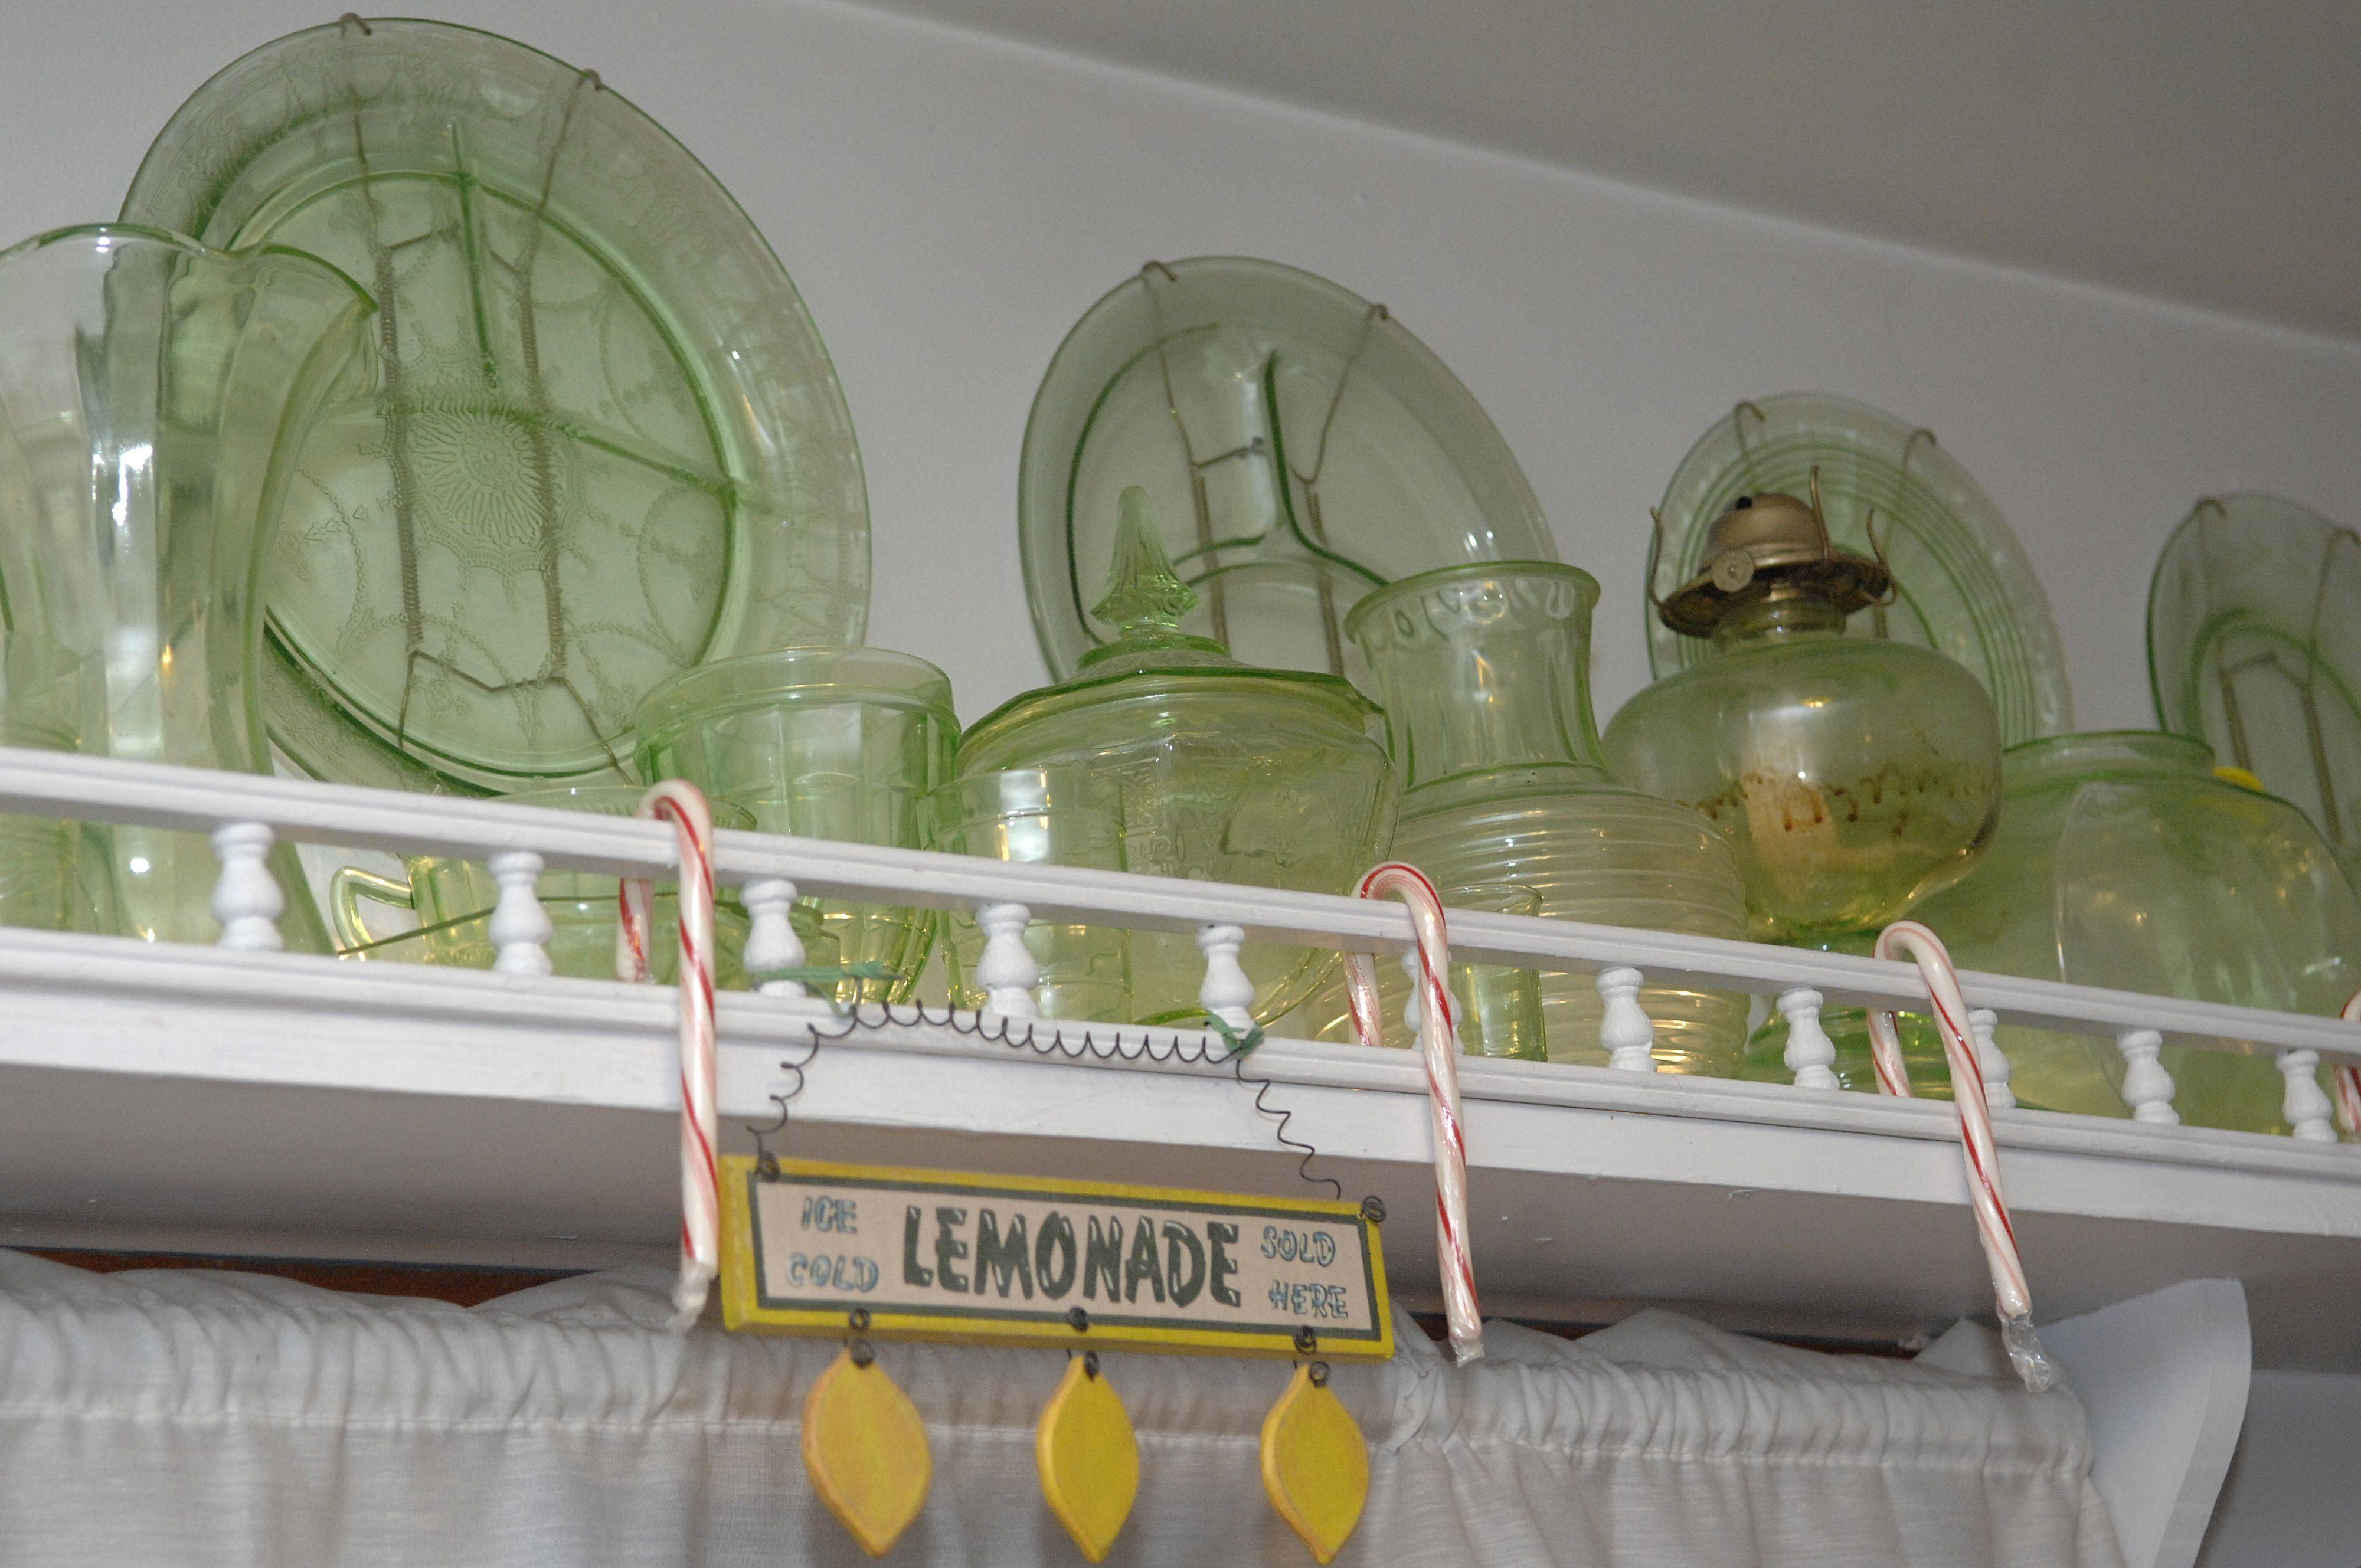 Steve Thoren has been collecting since he was a child, especially green Depression glass and clocks of all sizes. In the kitchen, there are 550 pieces of green Depression glass on display.